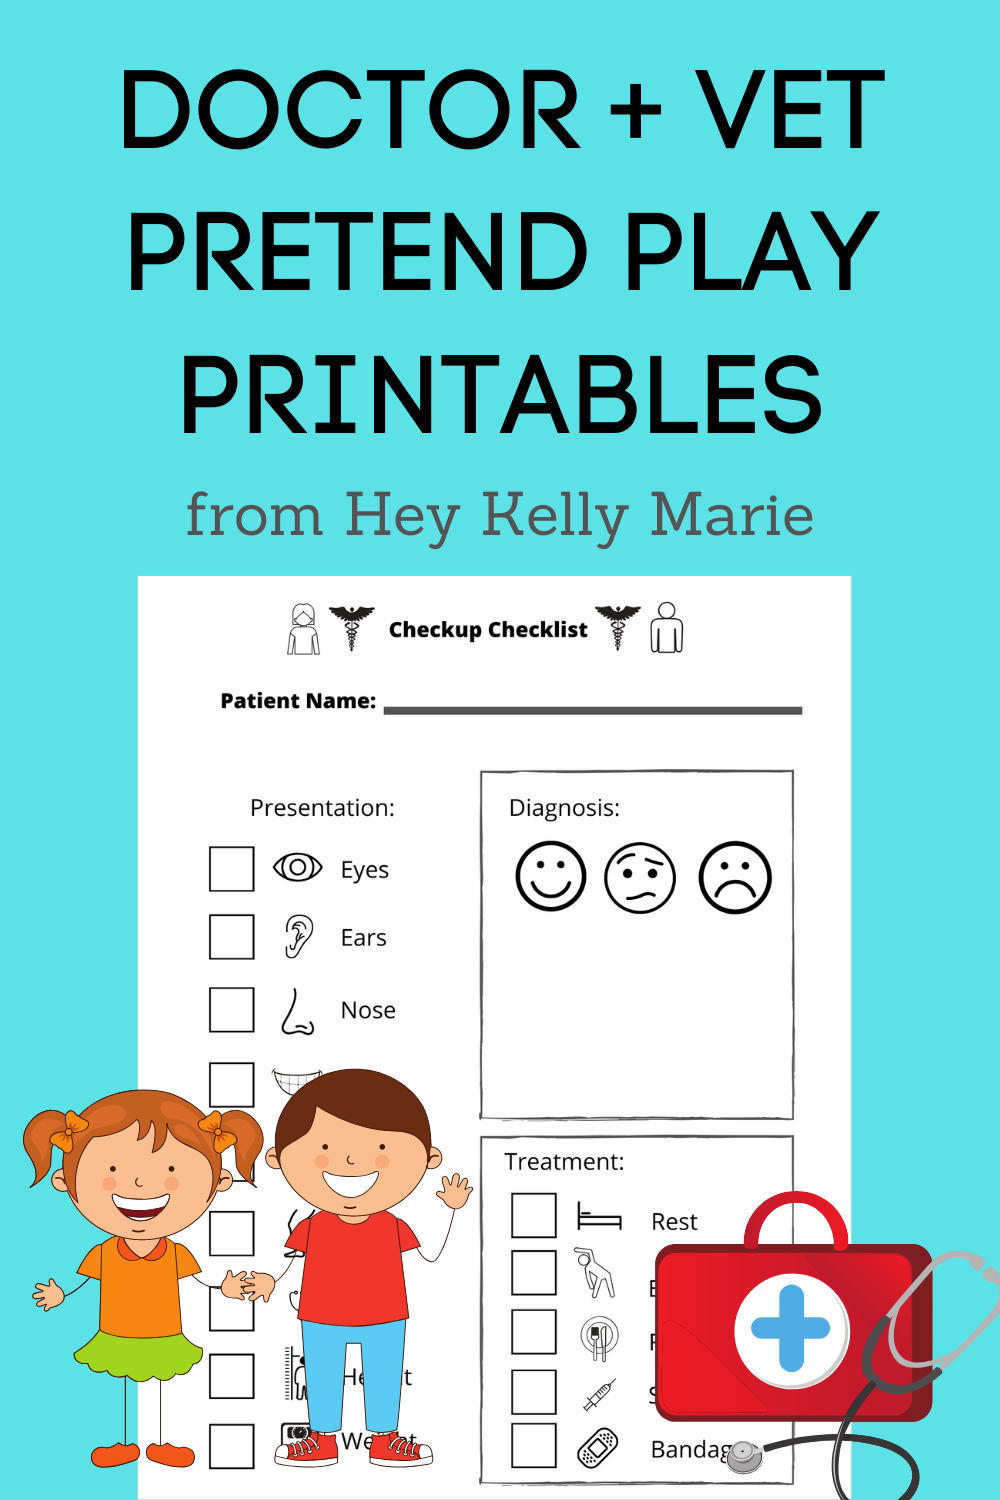 Doctor And Hospital Dramatic Pretend Play Printable Pages Hey Kelly Marie Dramatic Play Printables Dramatic Play Preschool Dramatic Play Printables Free [ 1500 x 1000 Pixel ]